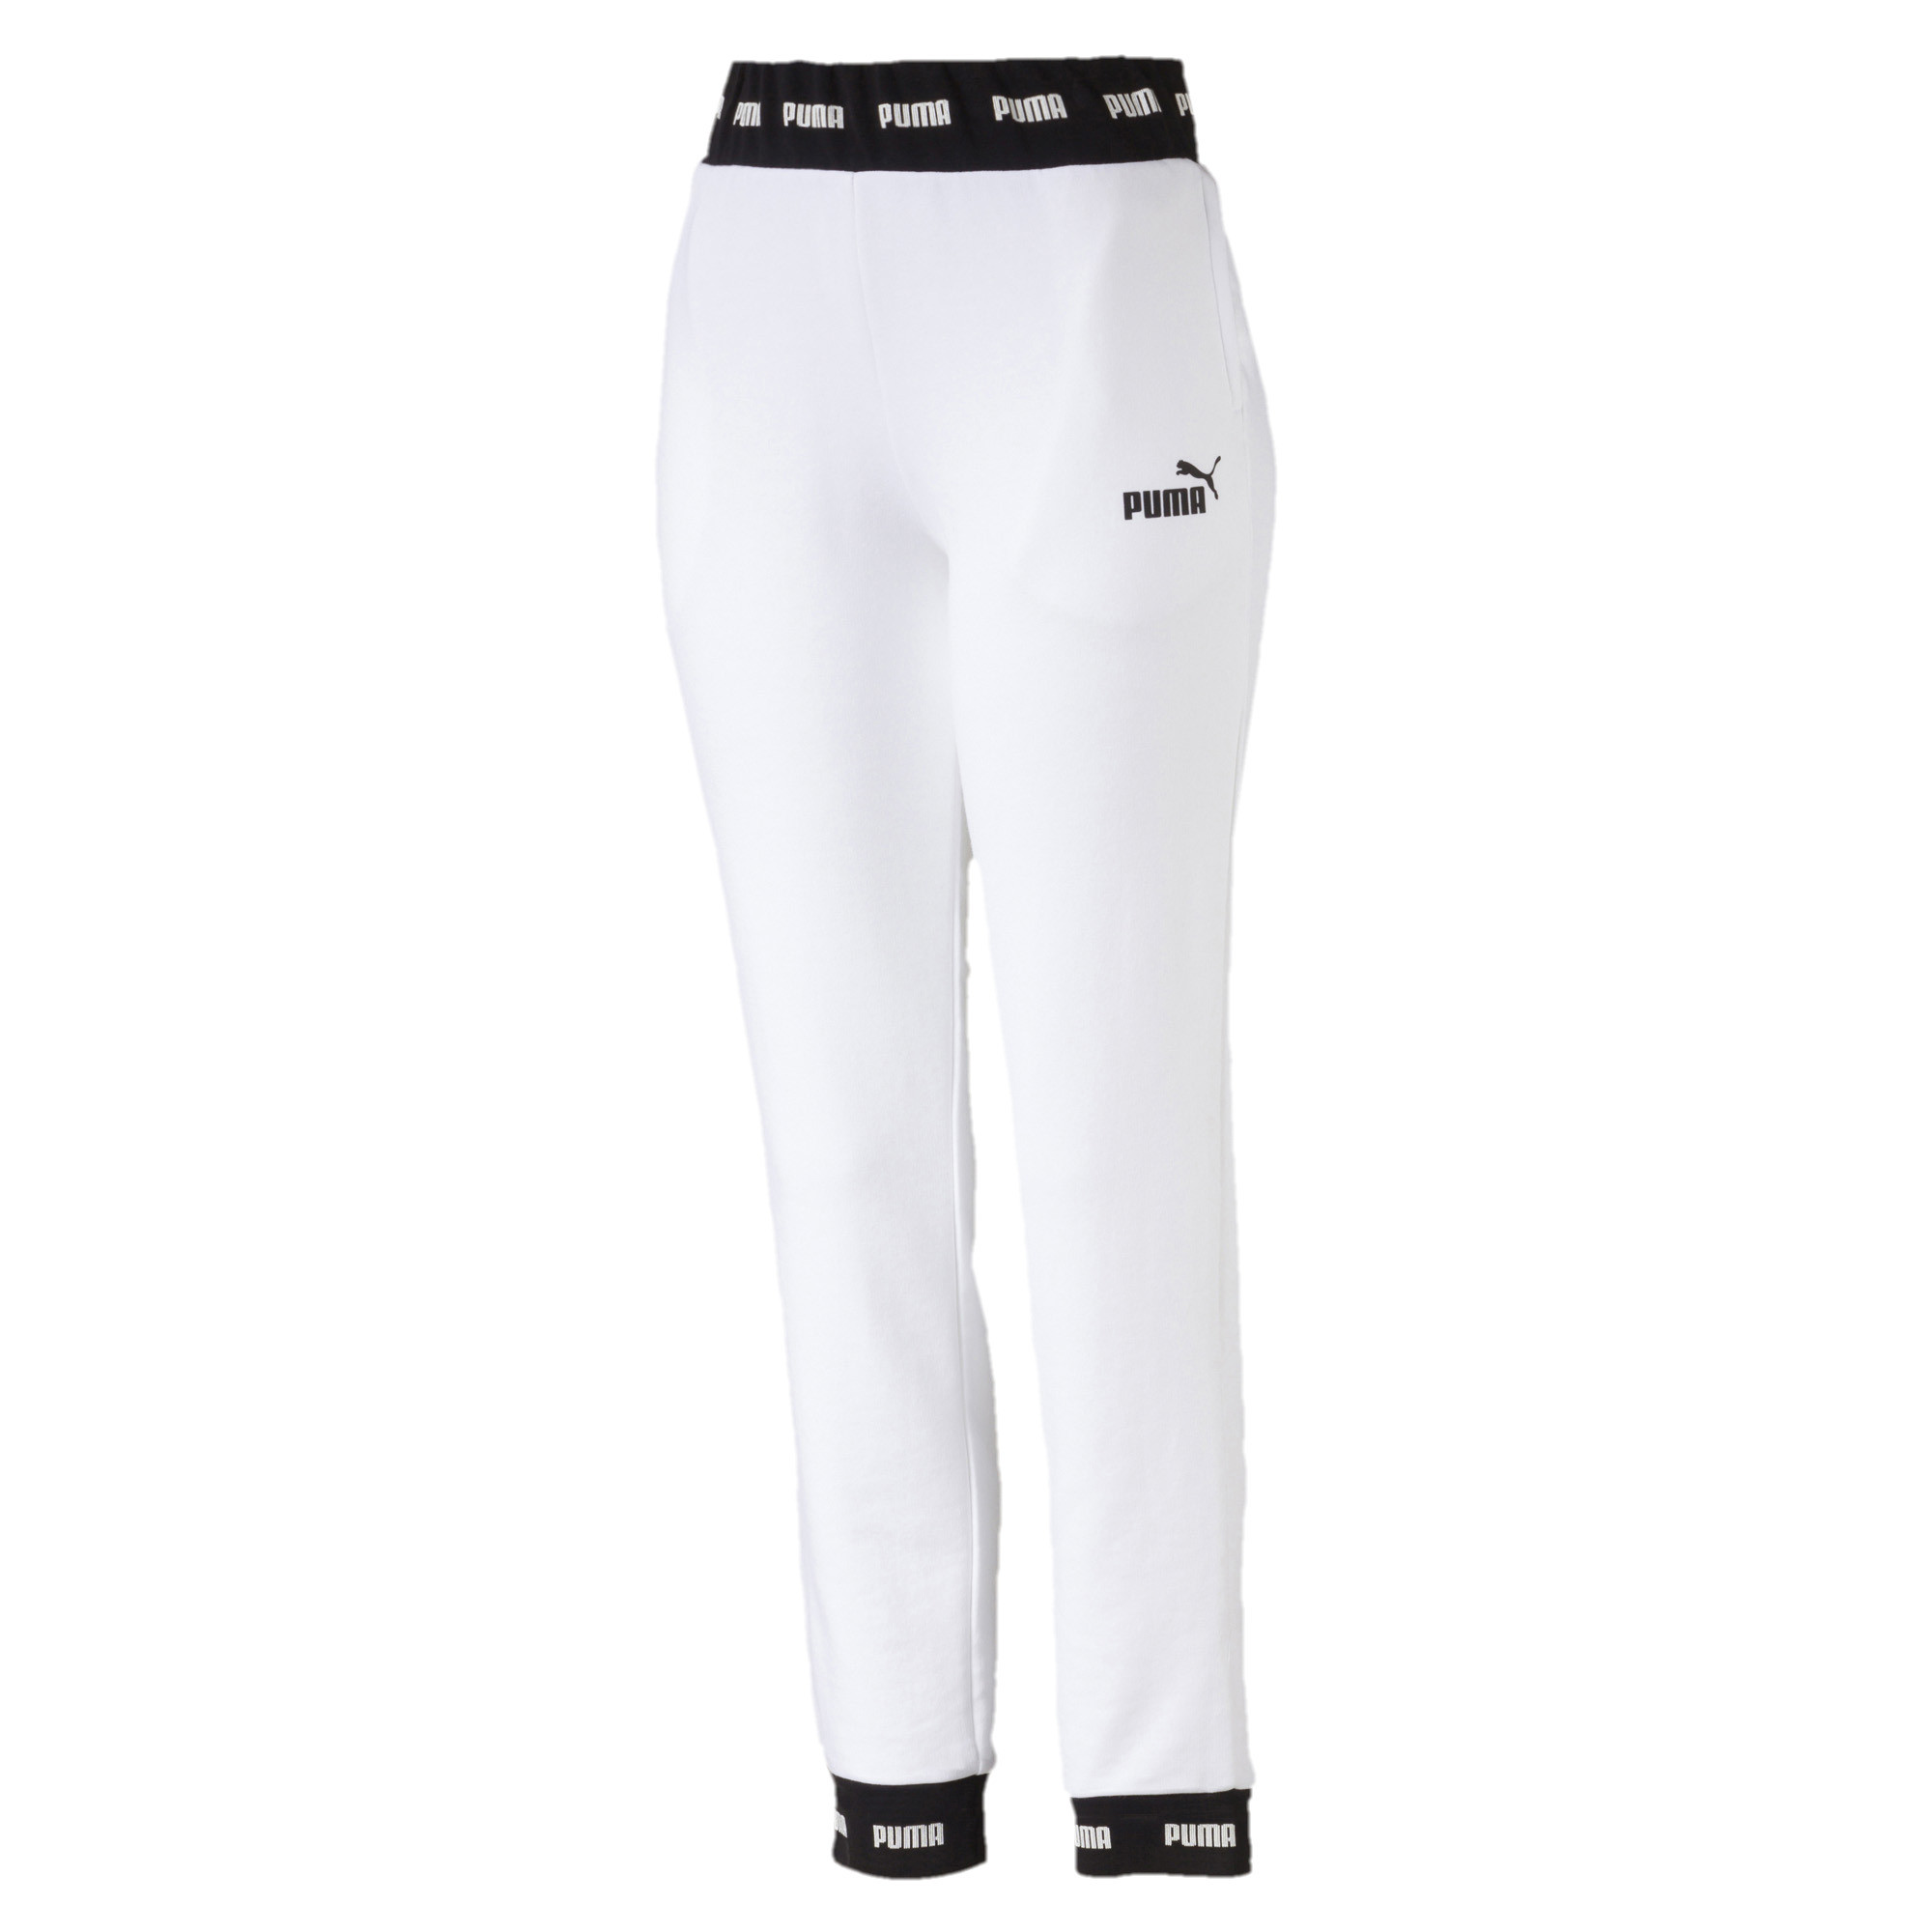 be44ca5d Amplified Knitted Women's Sweatpants